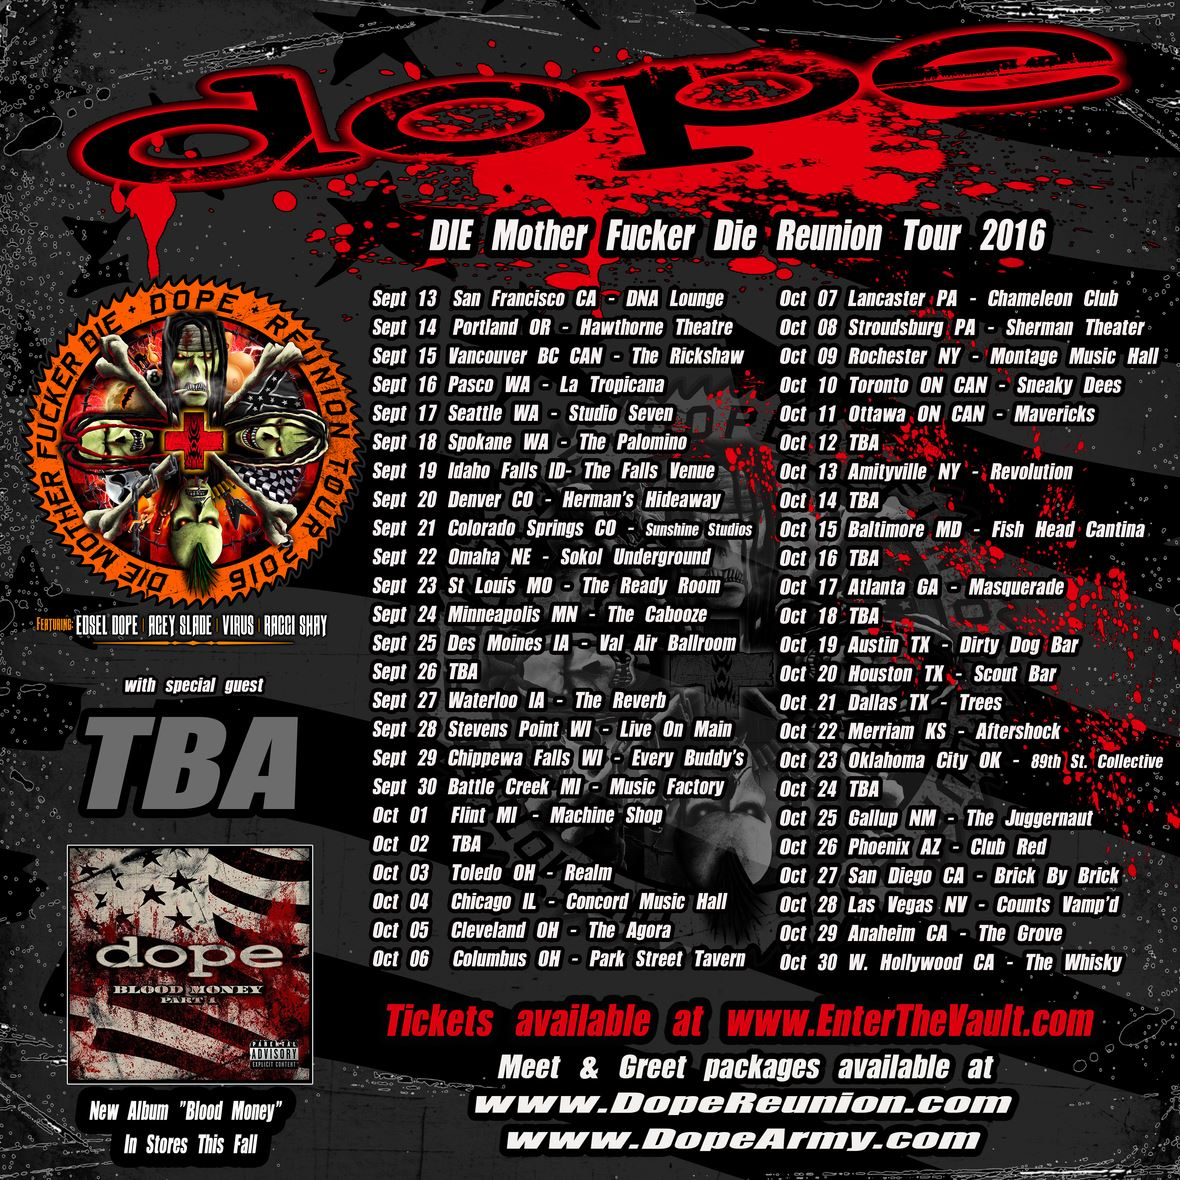 Dope_Reunion_Admat_ALL_DATES_Dope_Only